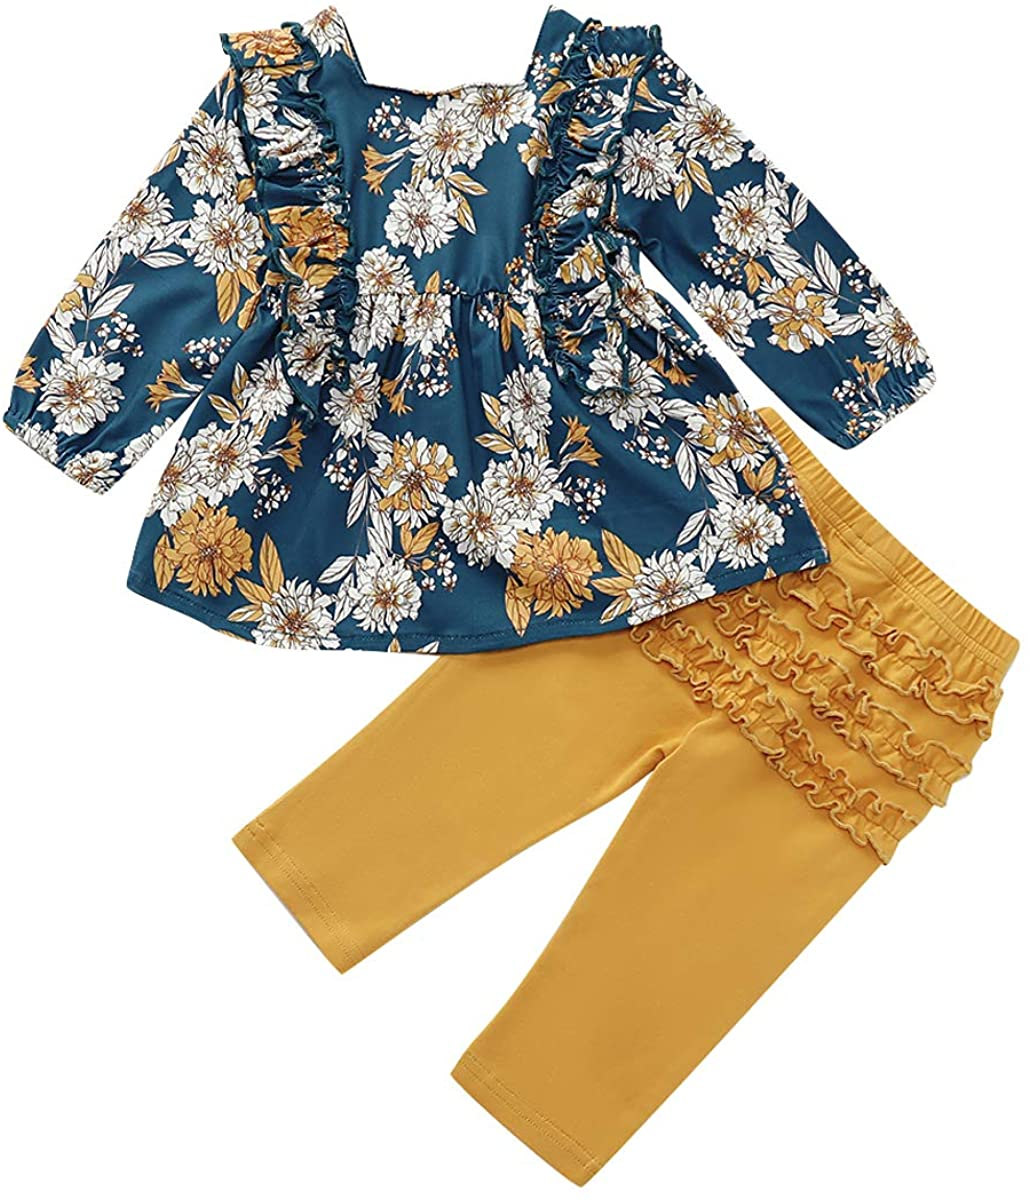 Infant Toddler Baby Outfit Little Kid Girl Long Sleeve Floral Ruffle Dress Shirt Top Lace Pants Clothes Set